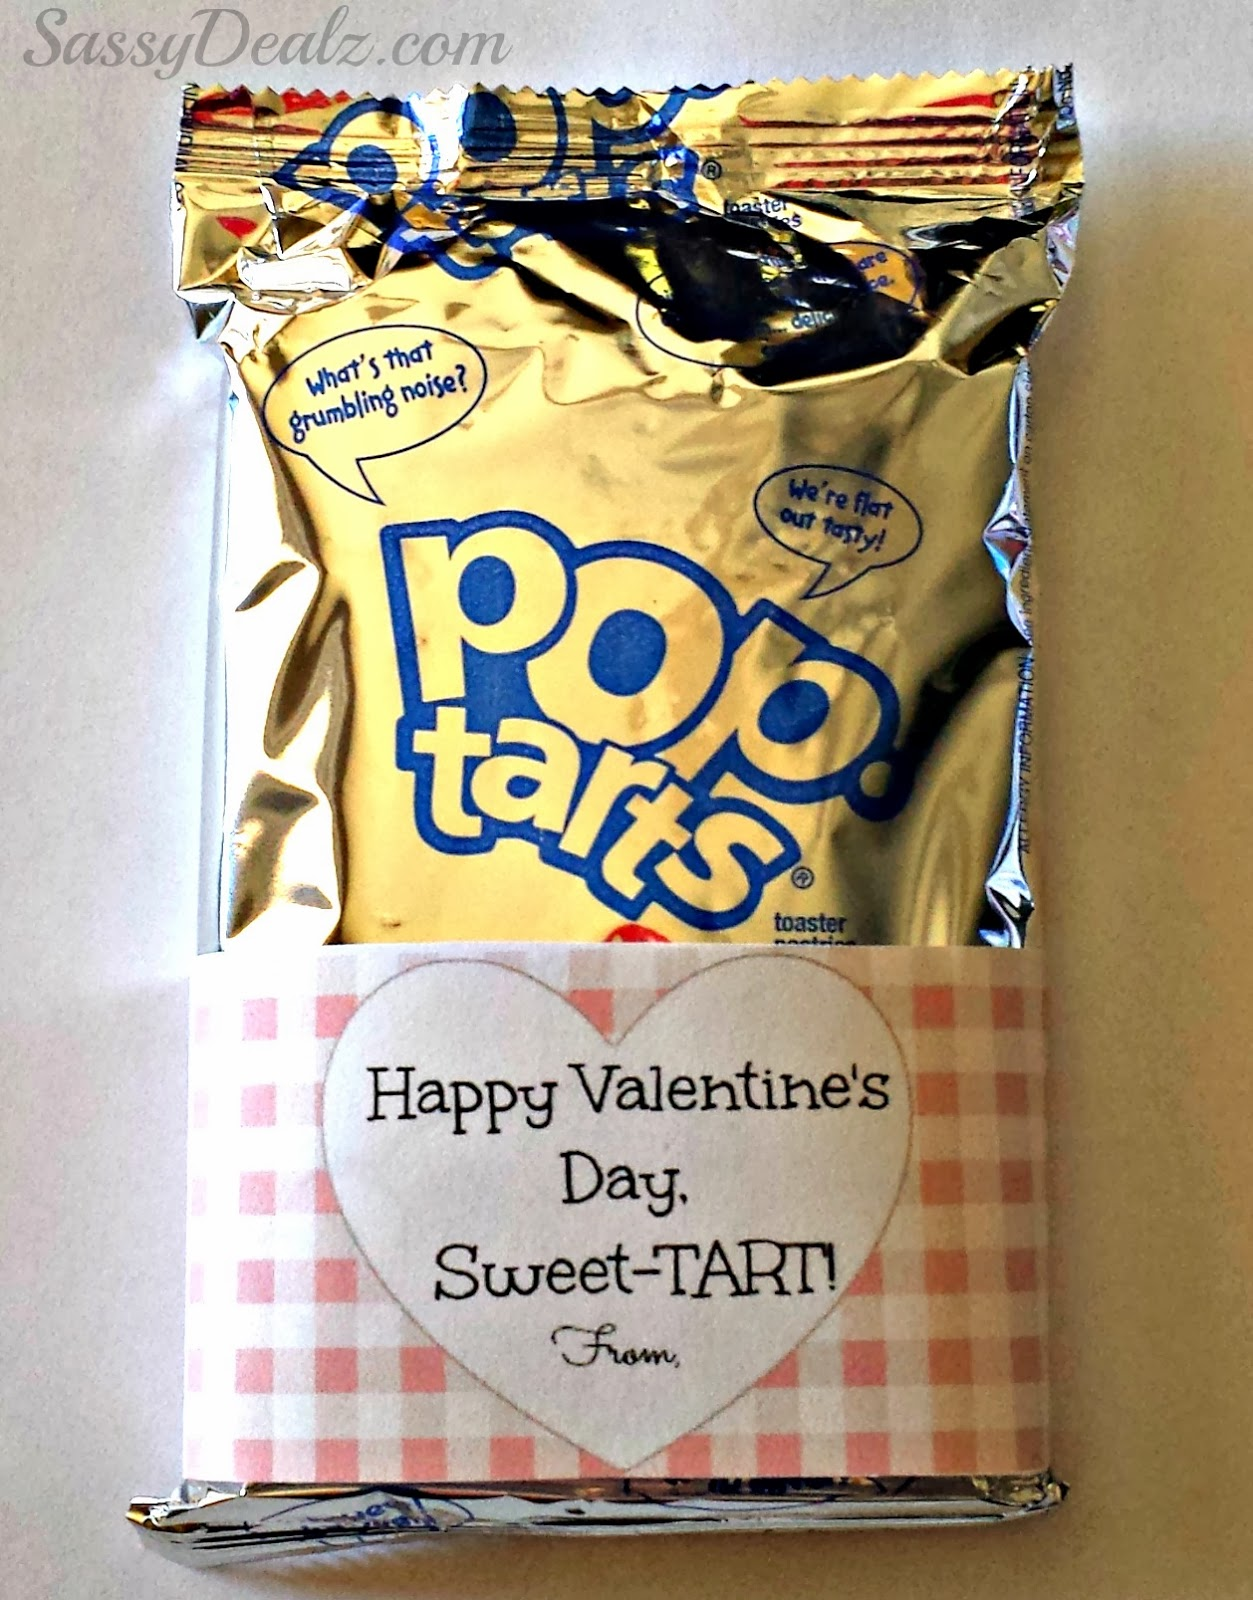 pop-tarts valentines day gift idea